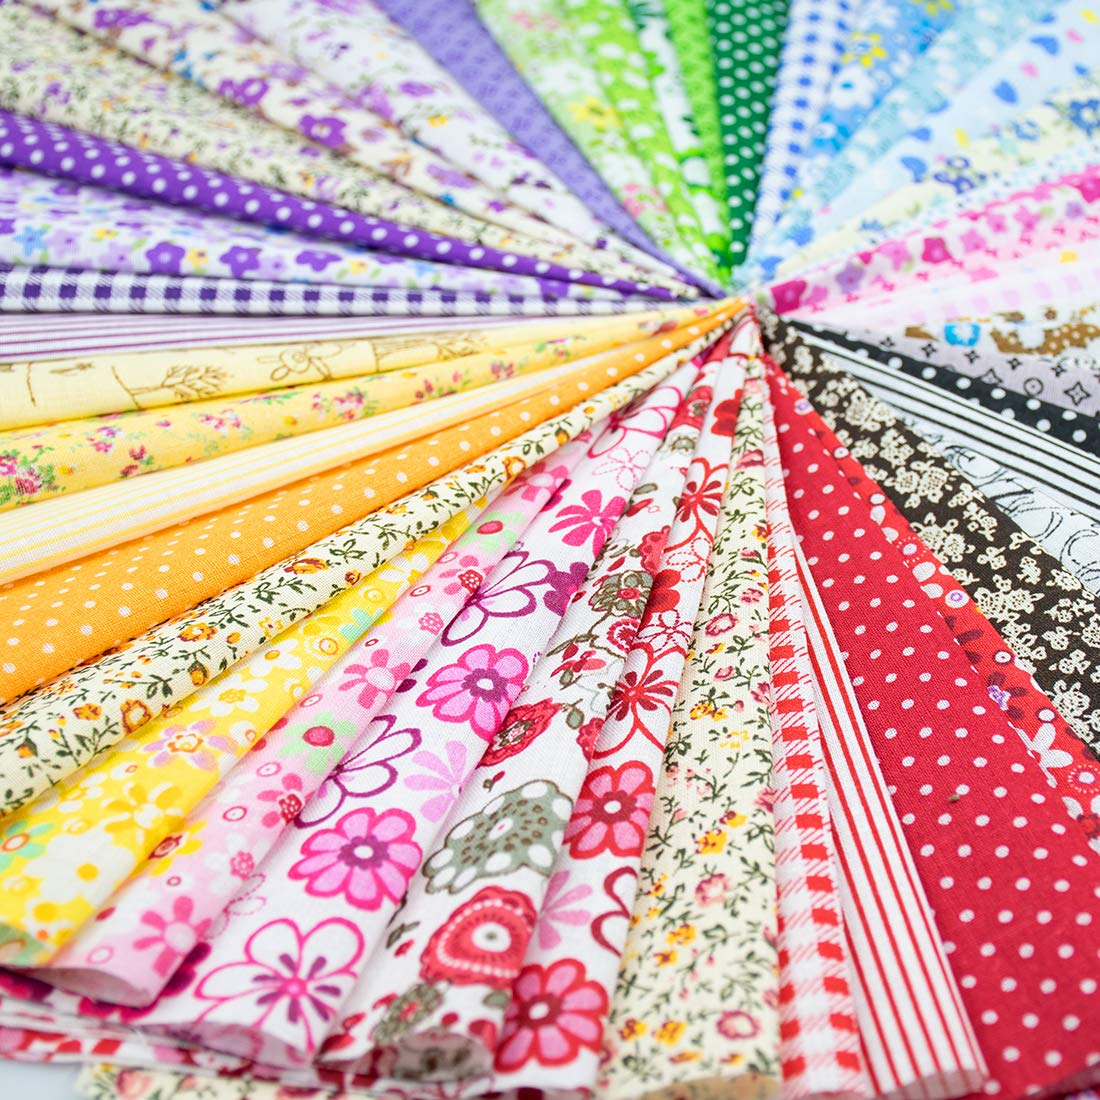 Foraineam 60 PCS Different Designs9.8'' x 9.8'' (25cm x 25cm) Cotton Craft Fabric Bundle Printed Patchwork Squares for DIY Sewing Quilting Scrapbooking by Foraineam (Image #1)